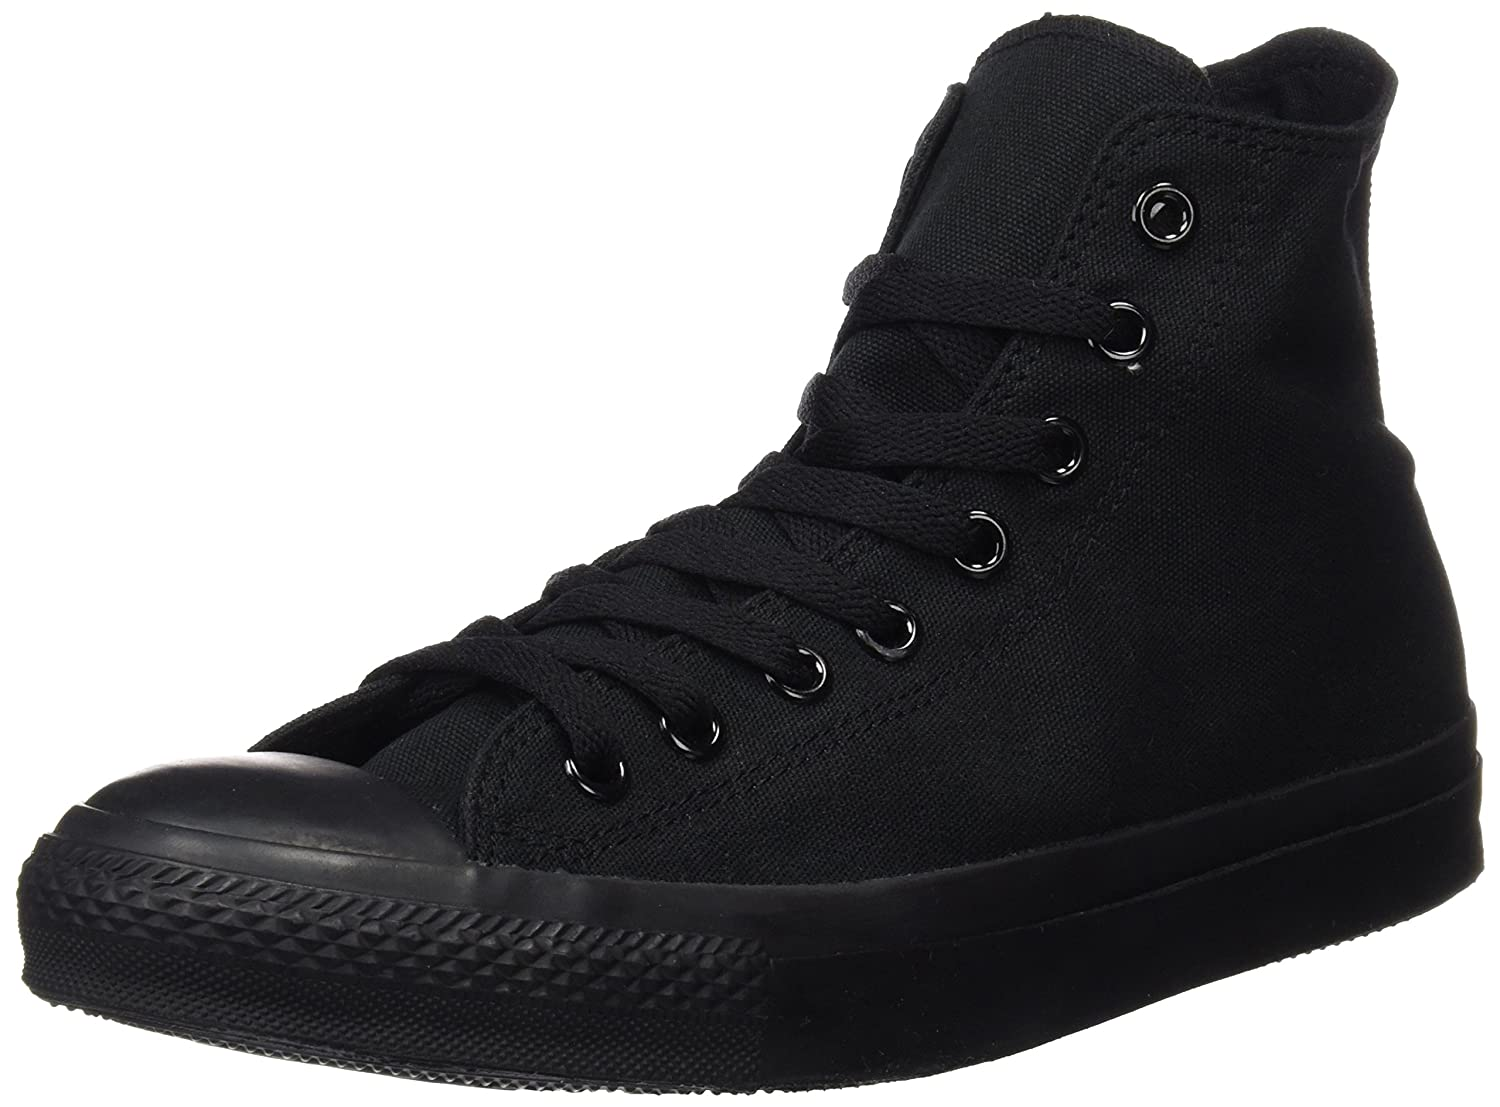 Converse Ctas Core Hi, Hi, Baskets mode Monochrome mixte adulte Black Black Monochrome 5c50729 - automaticcouplings.space